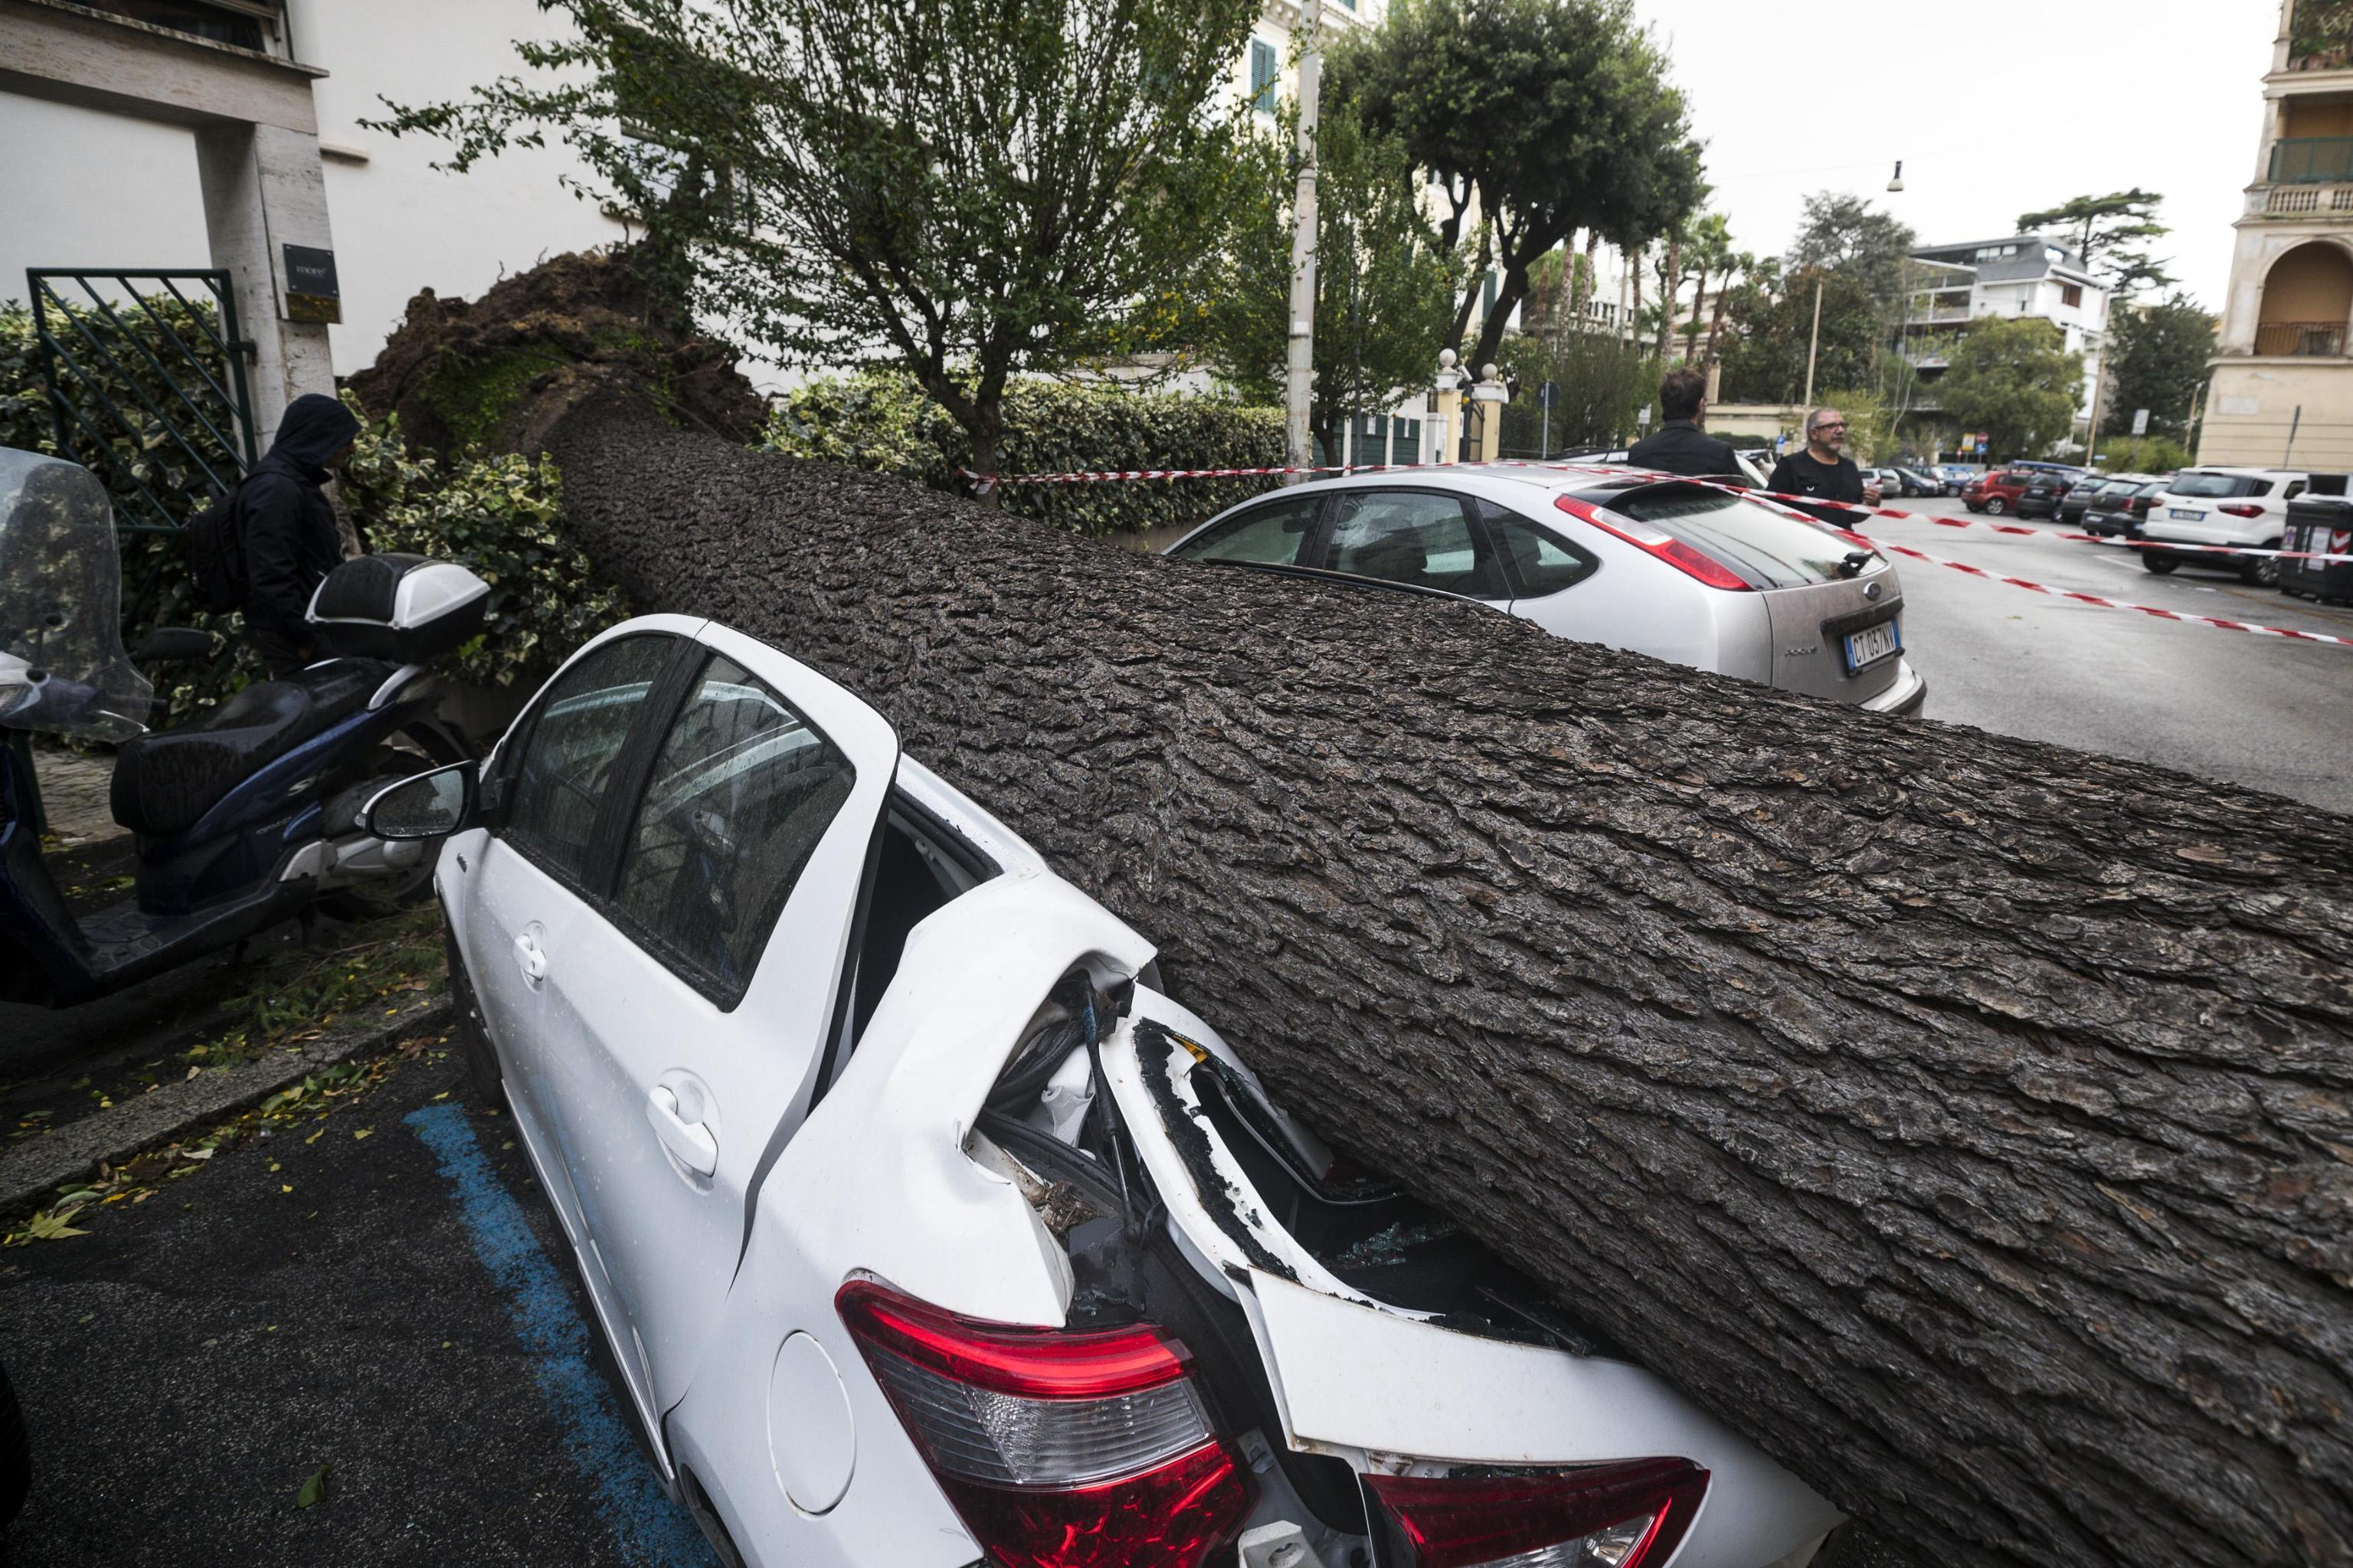 A car is crushed under a fallen tree after it was torn down by heavy winds, in Rome, Monday, Oct. 29, 2018. The national Civil Protection Agency has issued red and orange alerts -- meaning possible